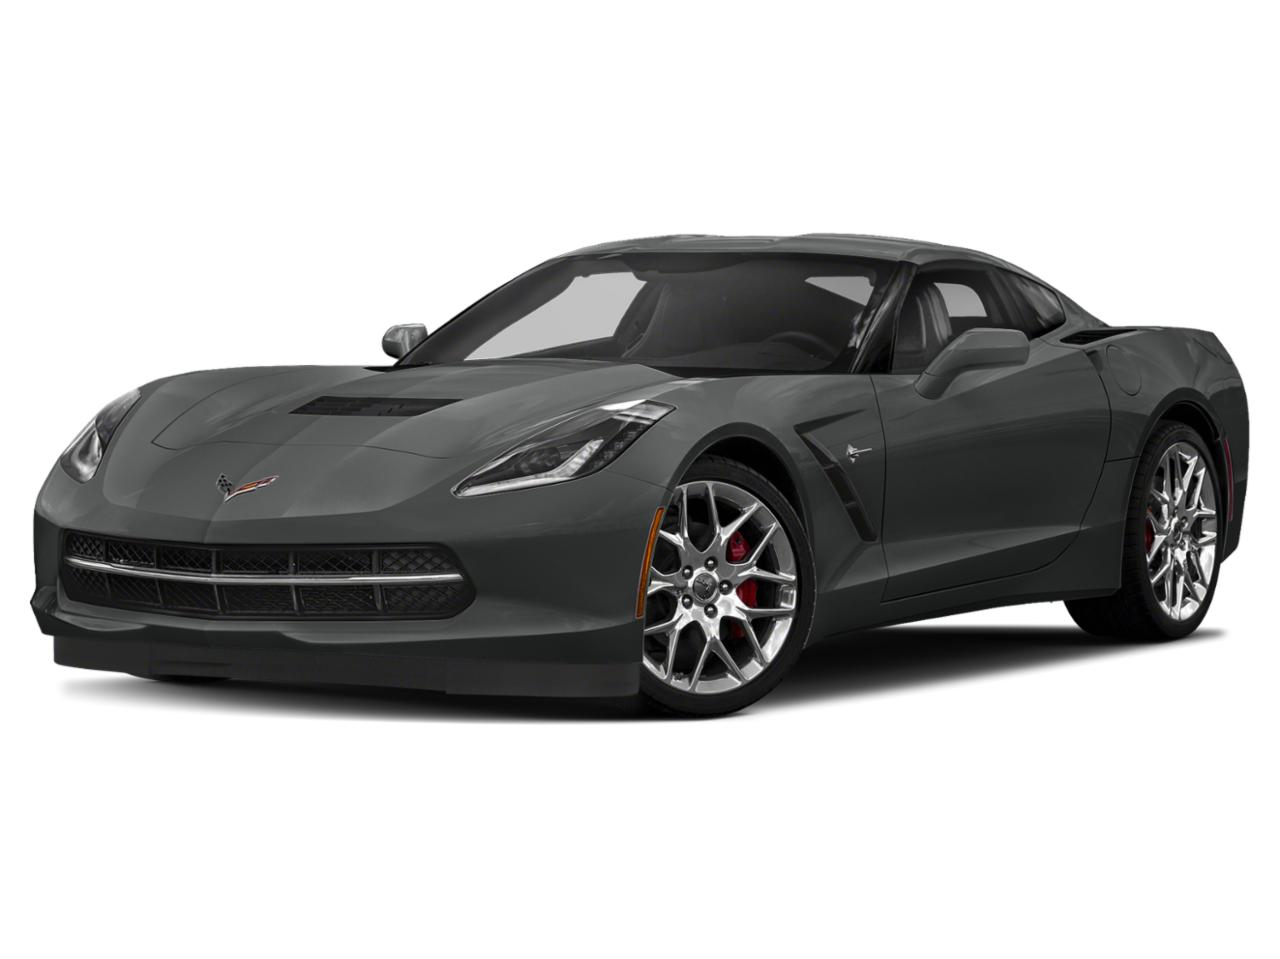 2019 Chevrolet Corvette Vehicle Photo in Tucson, AZ 85705